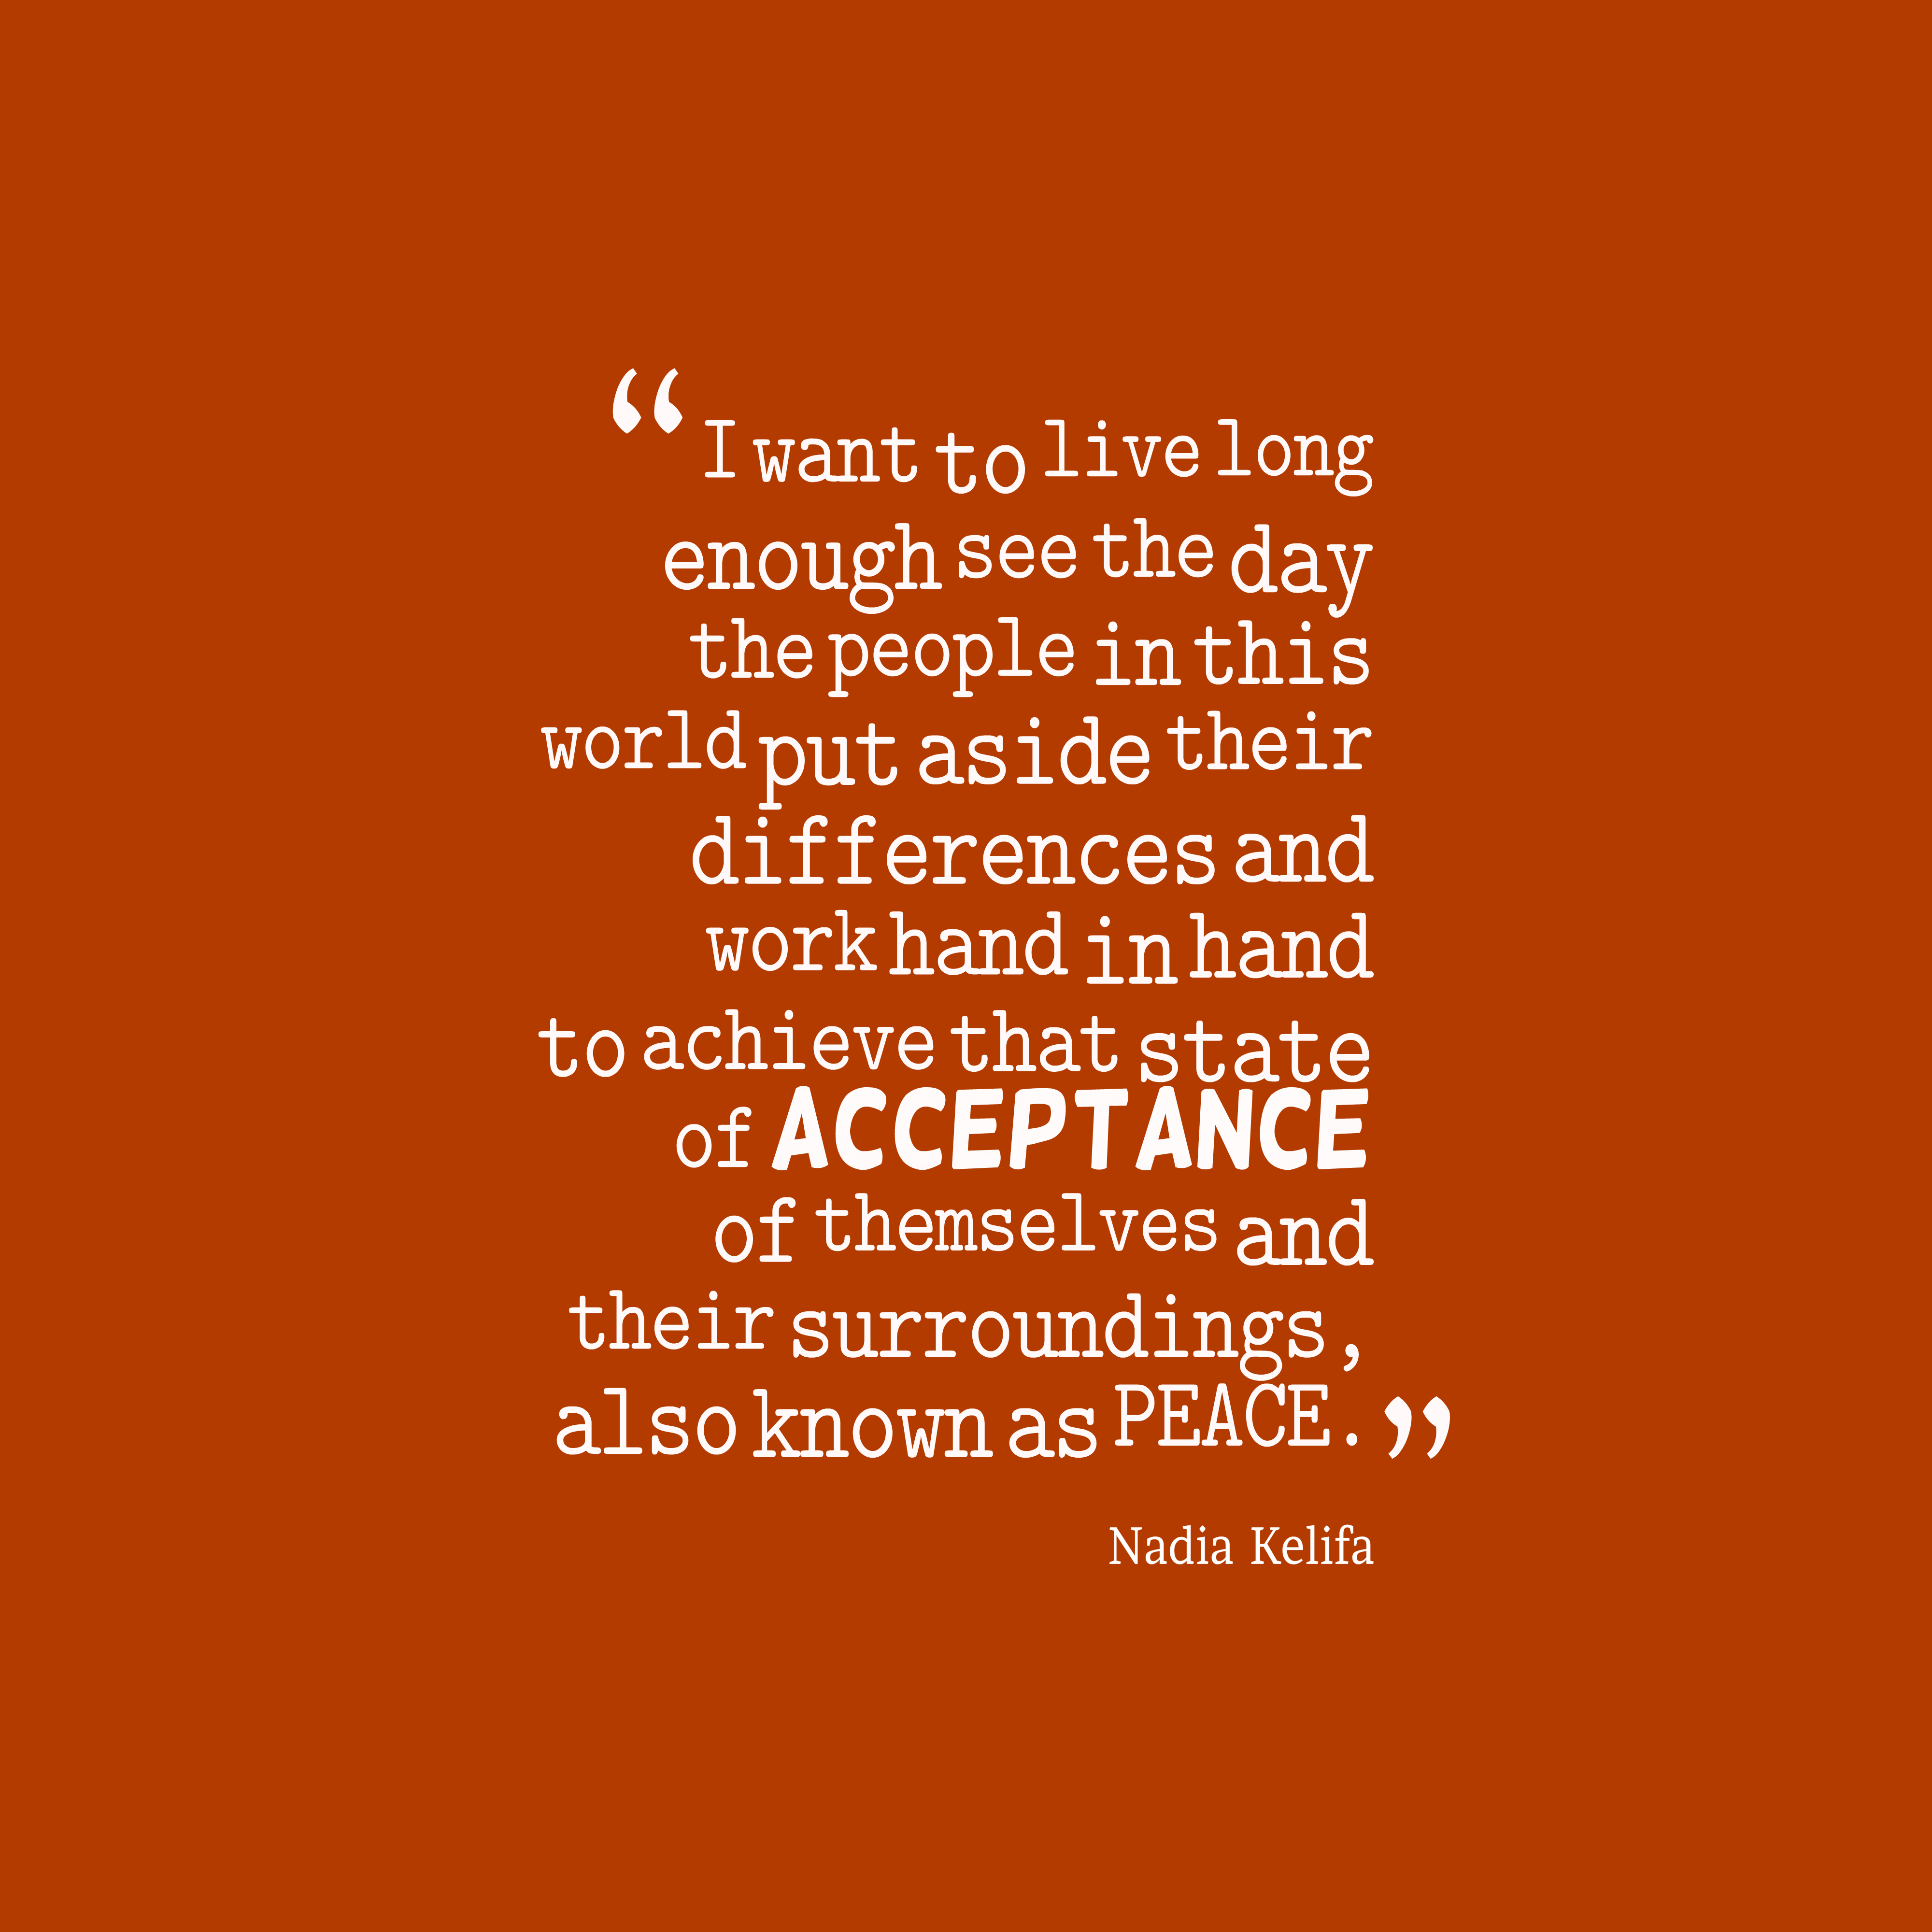 Picture » Nadia Kelifa Quote About Peace